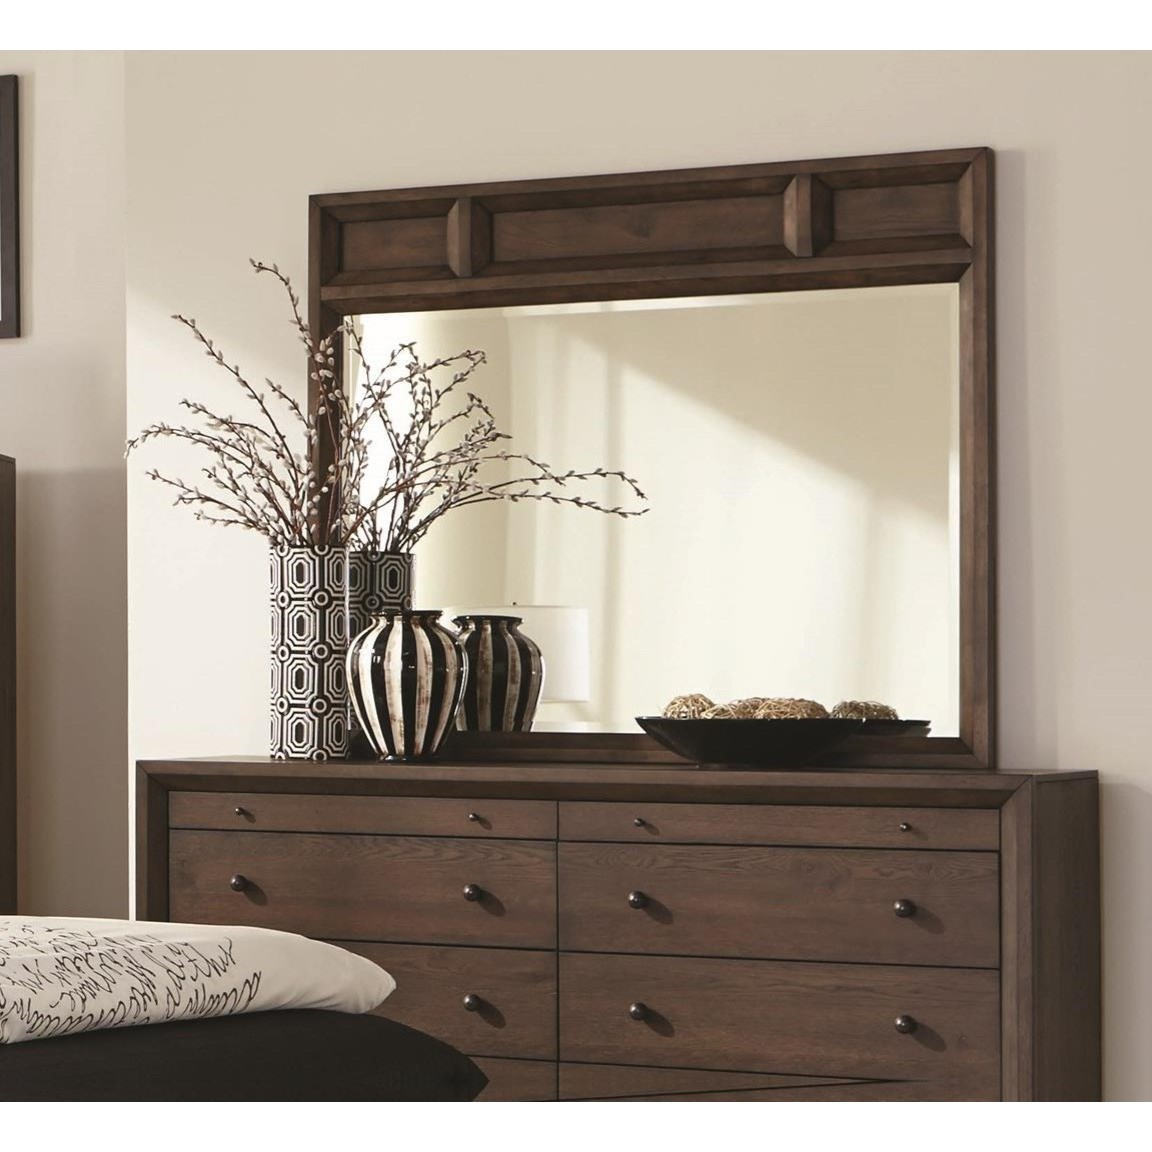 Coaster Bingham Mirror with Wood Frame - Item Number: B259-04